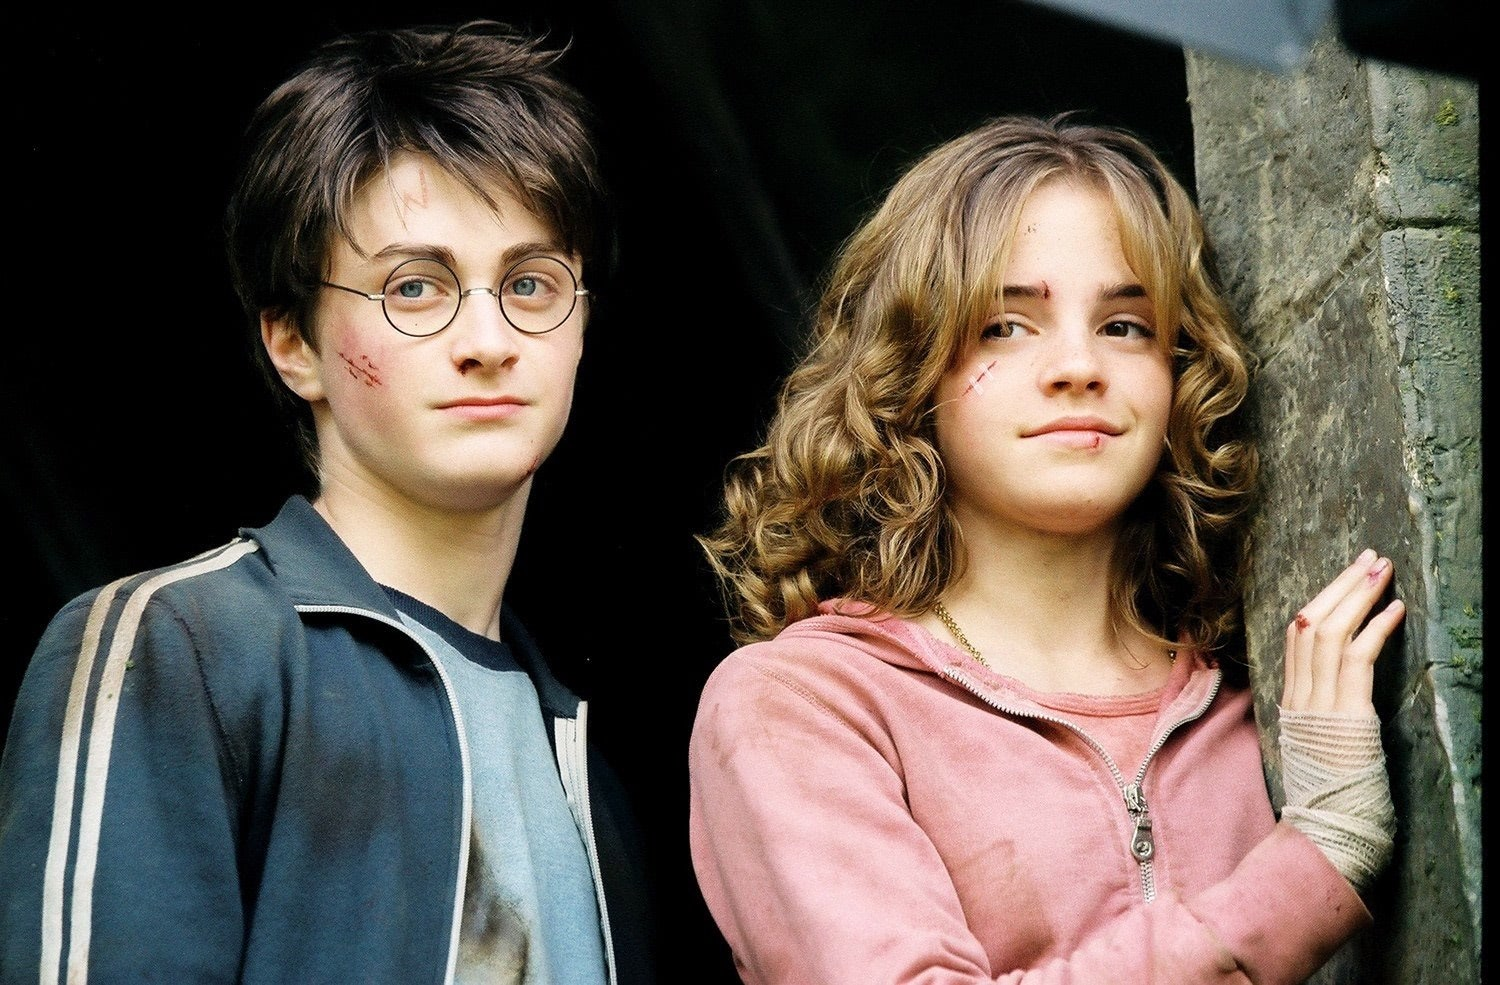 Harry and Hermione with cuts and bruises